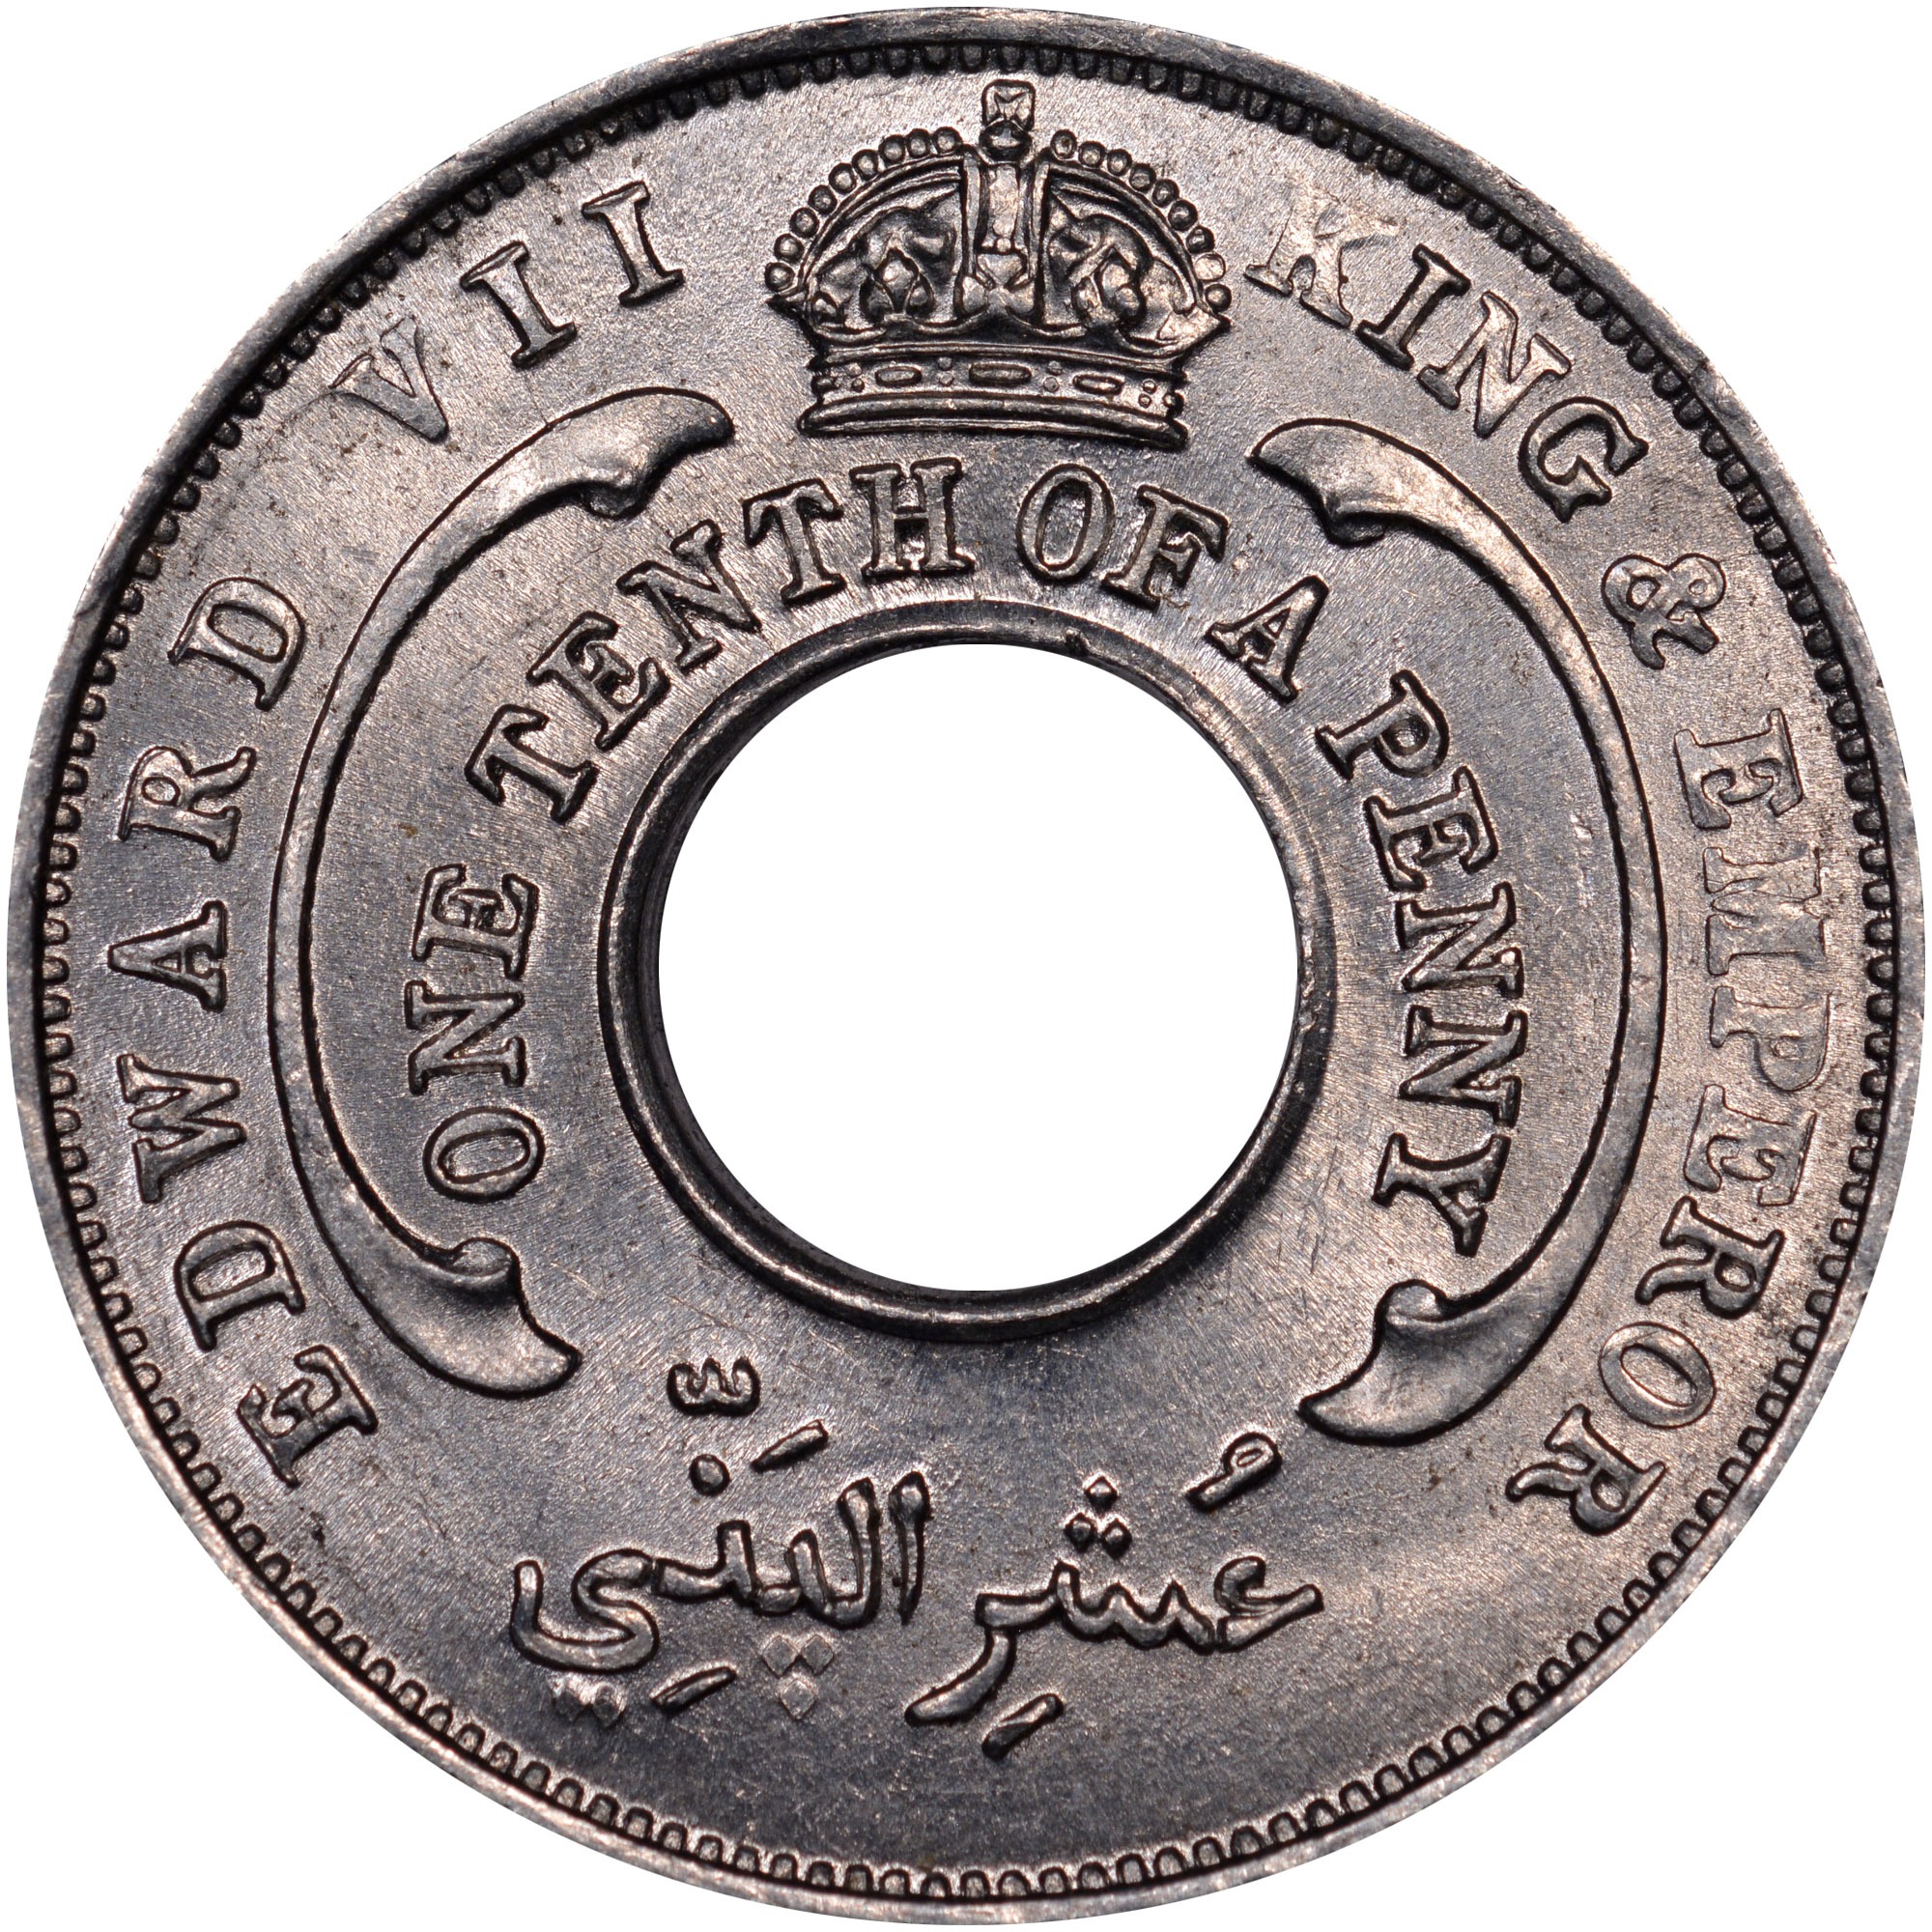 1907-1908 British West Africa 1/10 Penny obverse